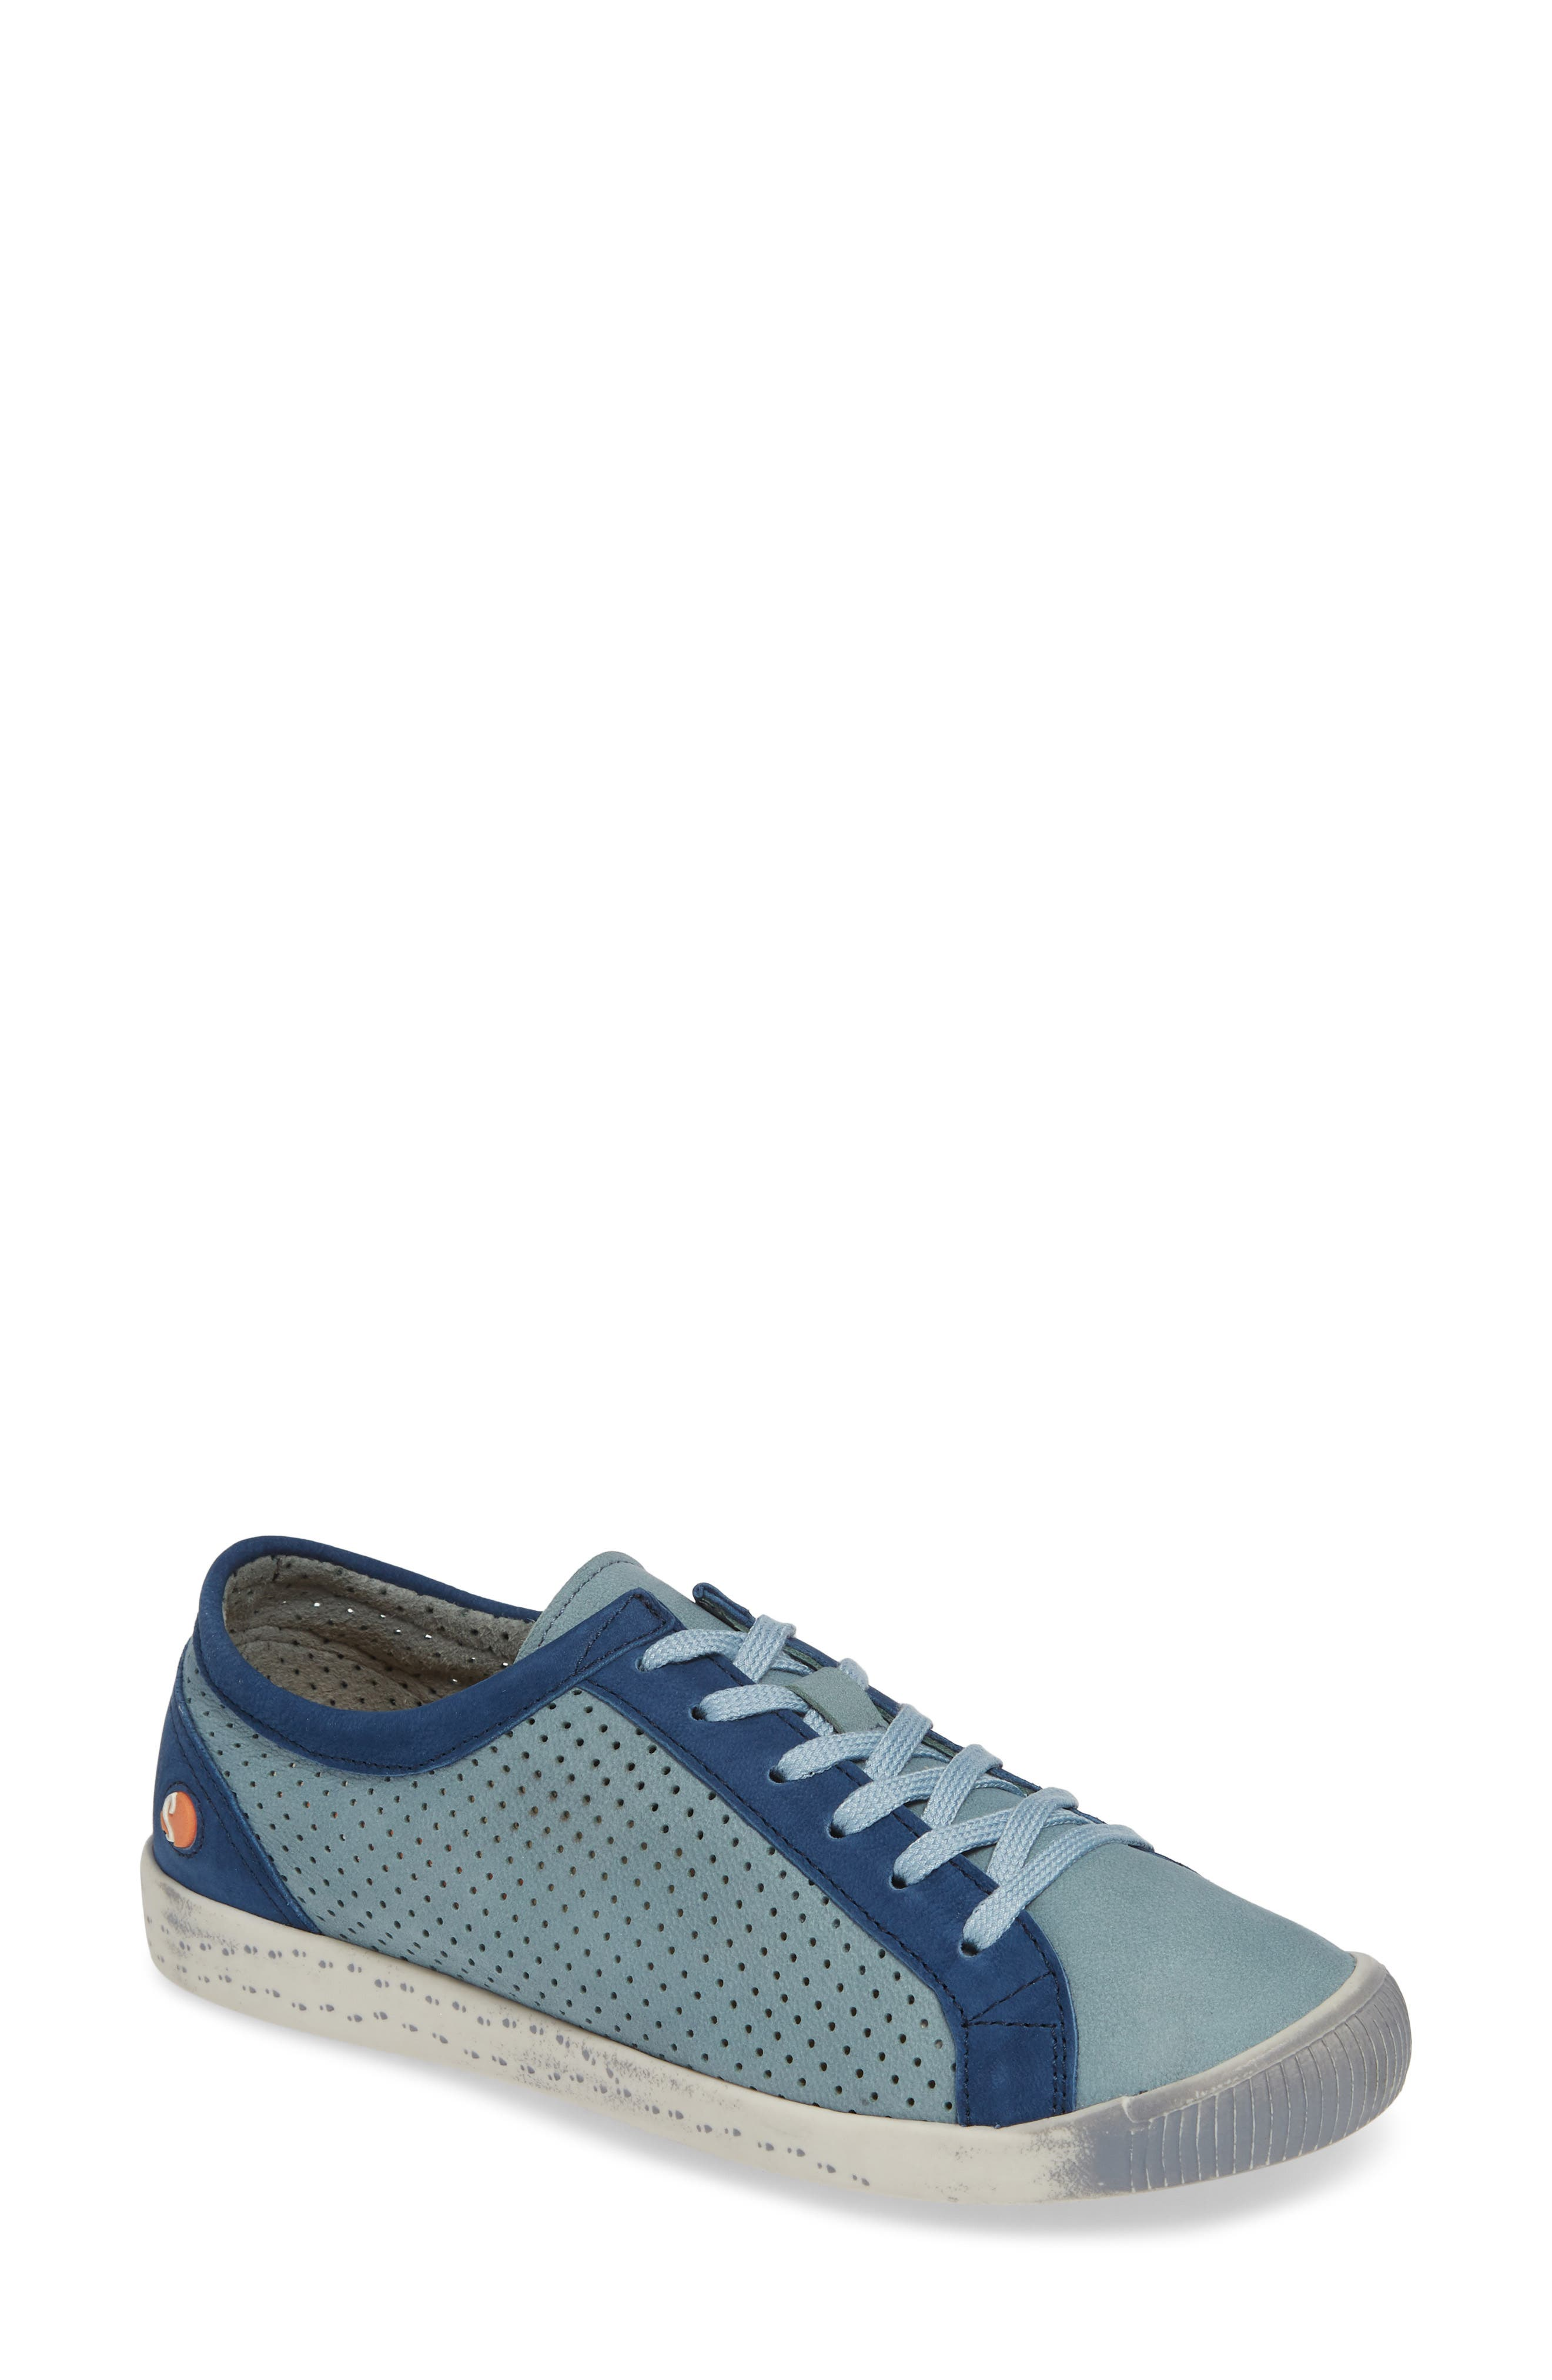 Softinos By Fly London Ica Sneaker, Blue